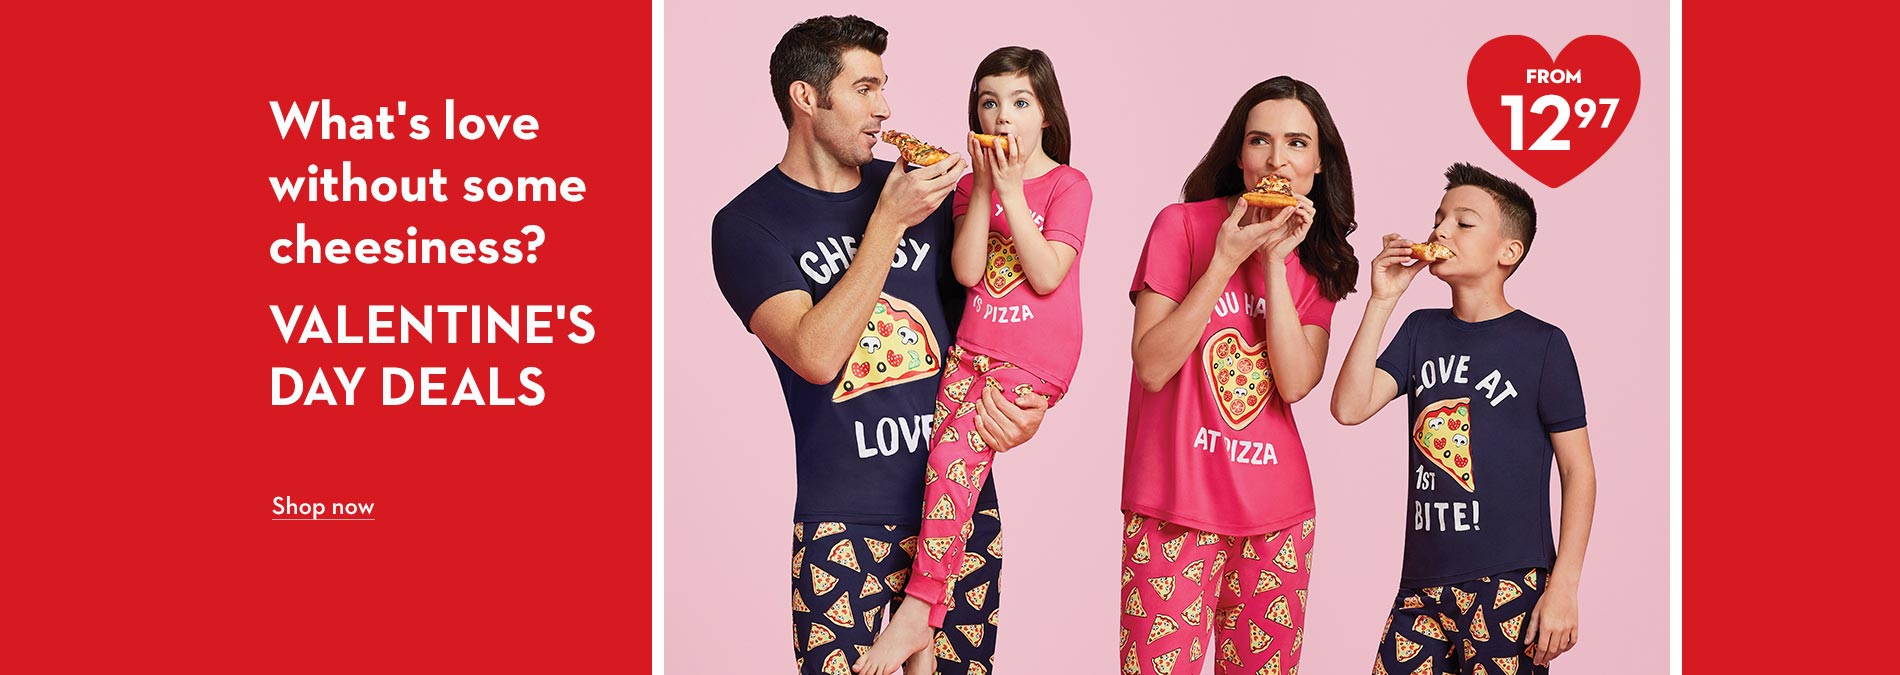 What's love without some cheesiness? Valentine's Day Deals from 12.97